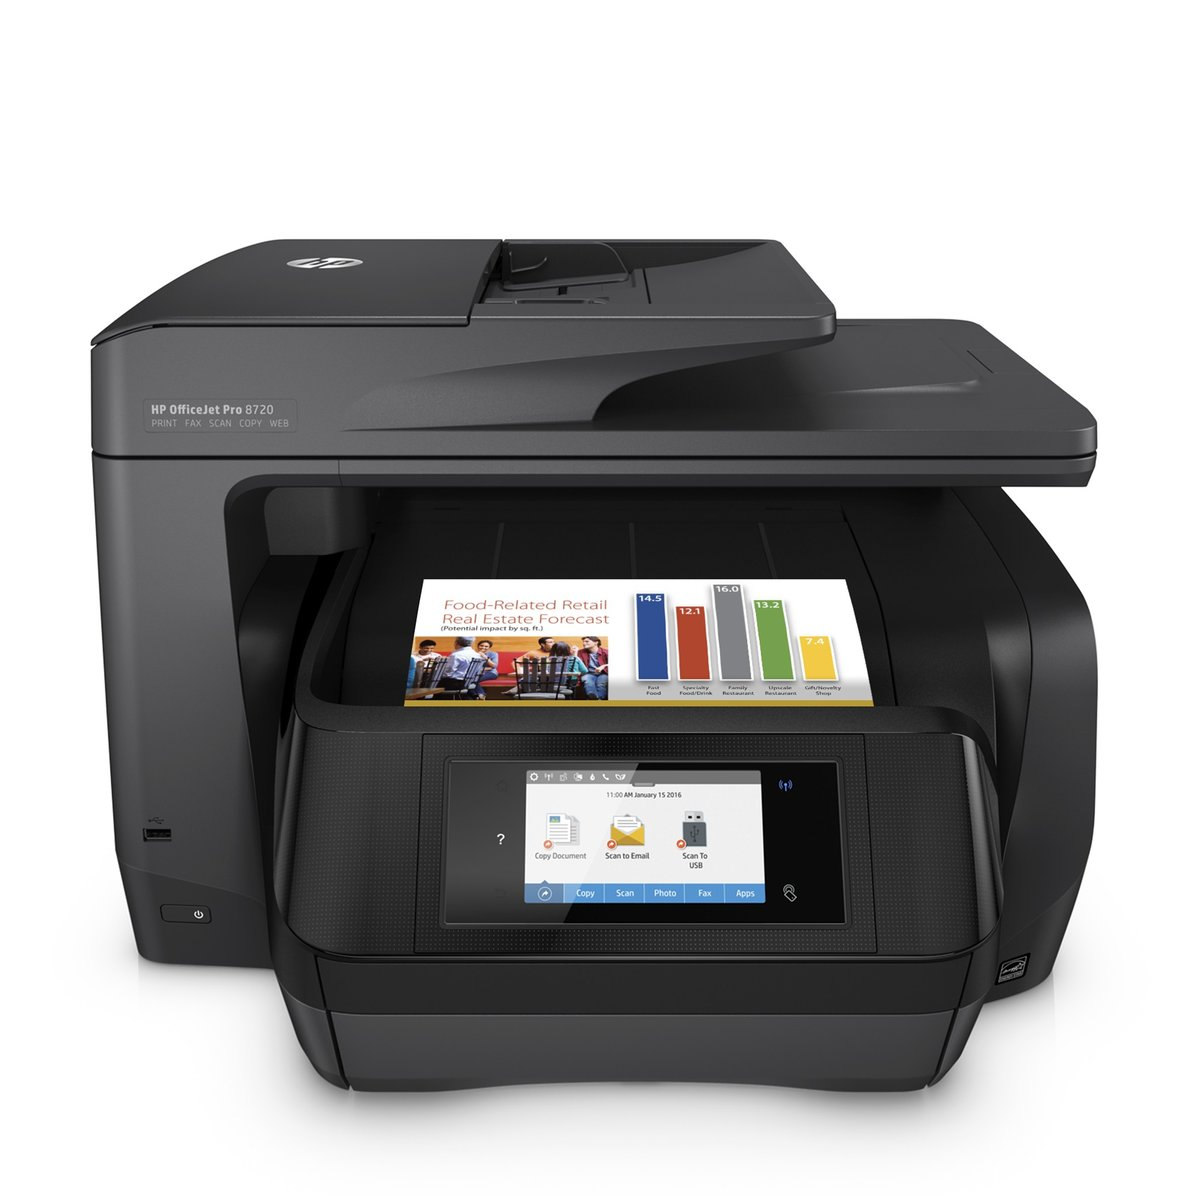 Posh One Printer Mobile Mobile Printing By Office Depot Officemax Hp Officejet Pro Wireless All Hp Officejet Pro Wireless All One Printer dpreview Why Is My Printer Printing Blank Pages